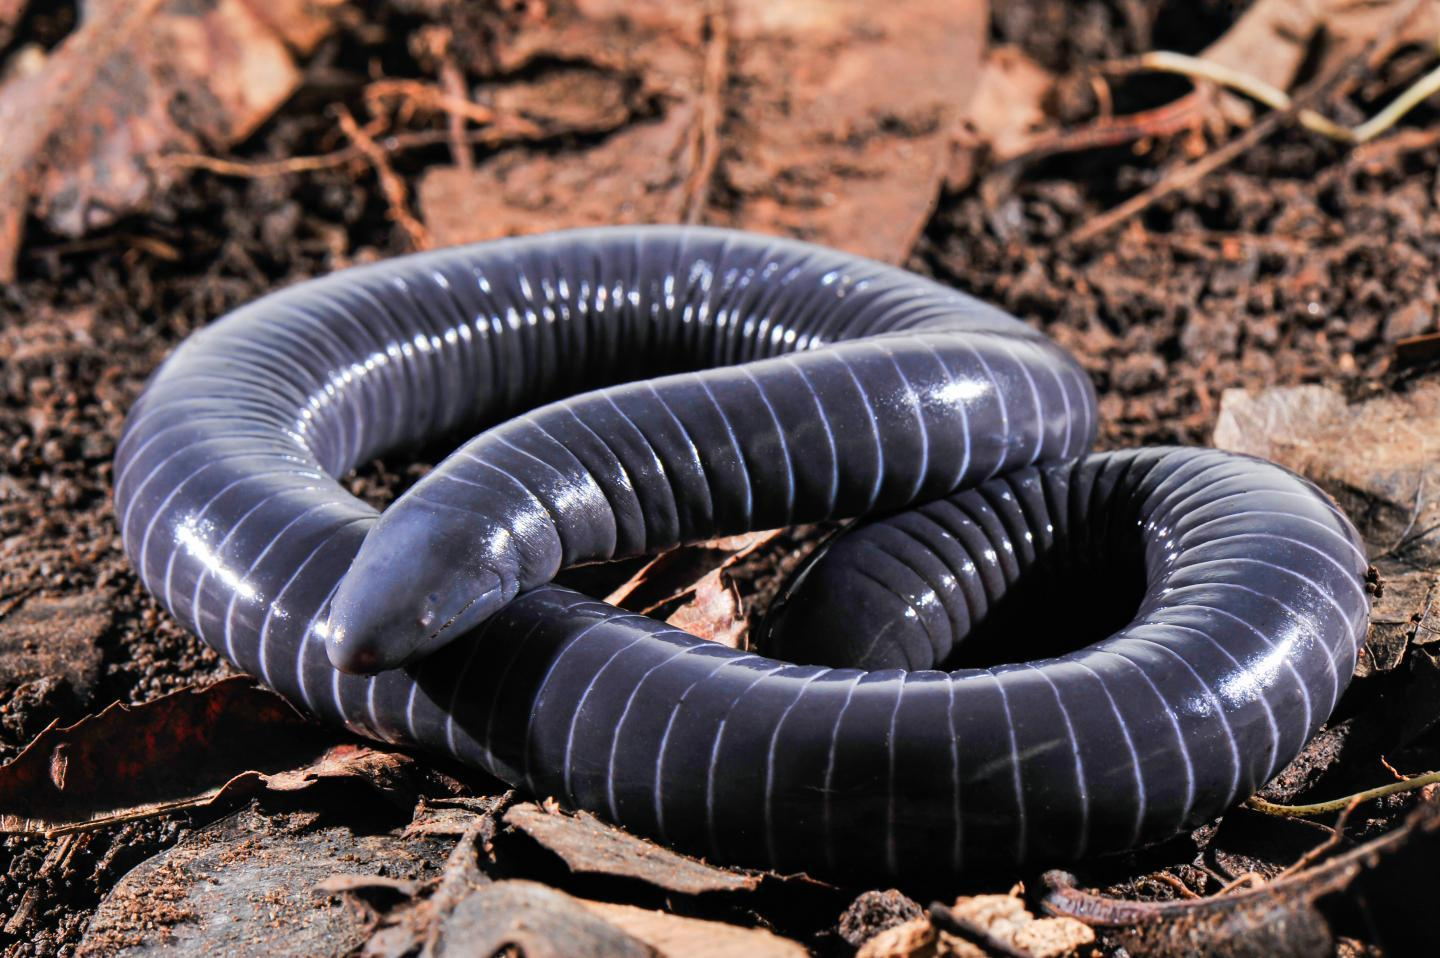 The ringed caecilian, Siphonops annulatus